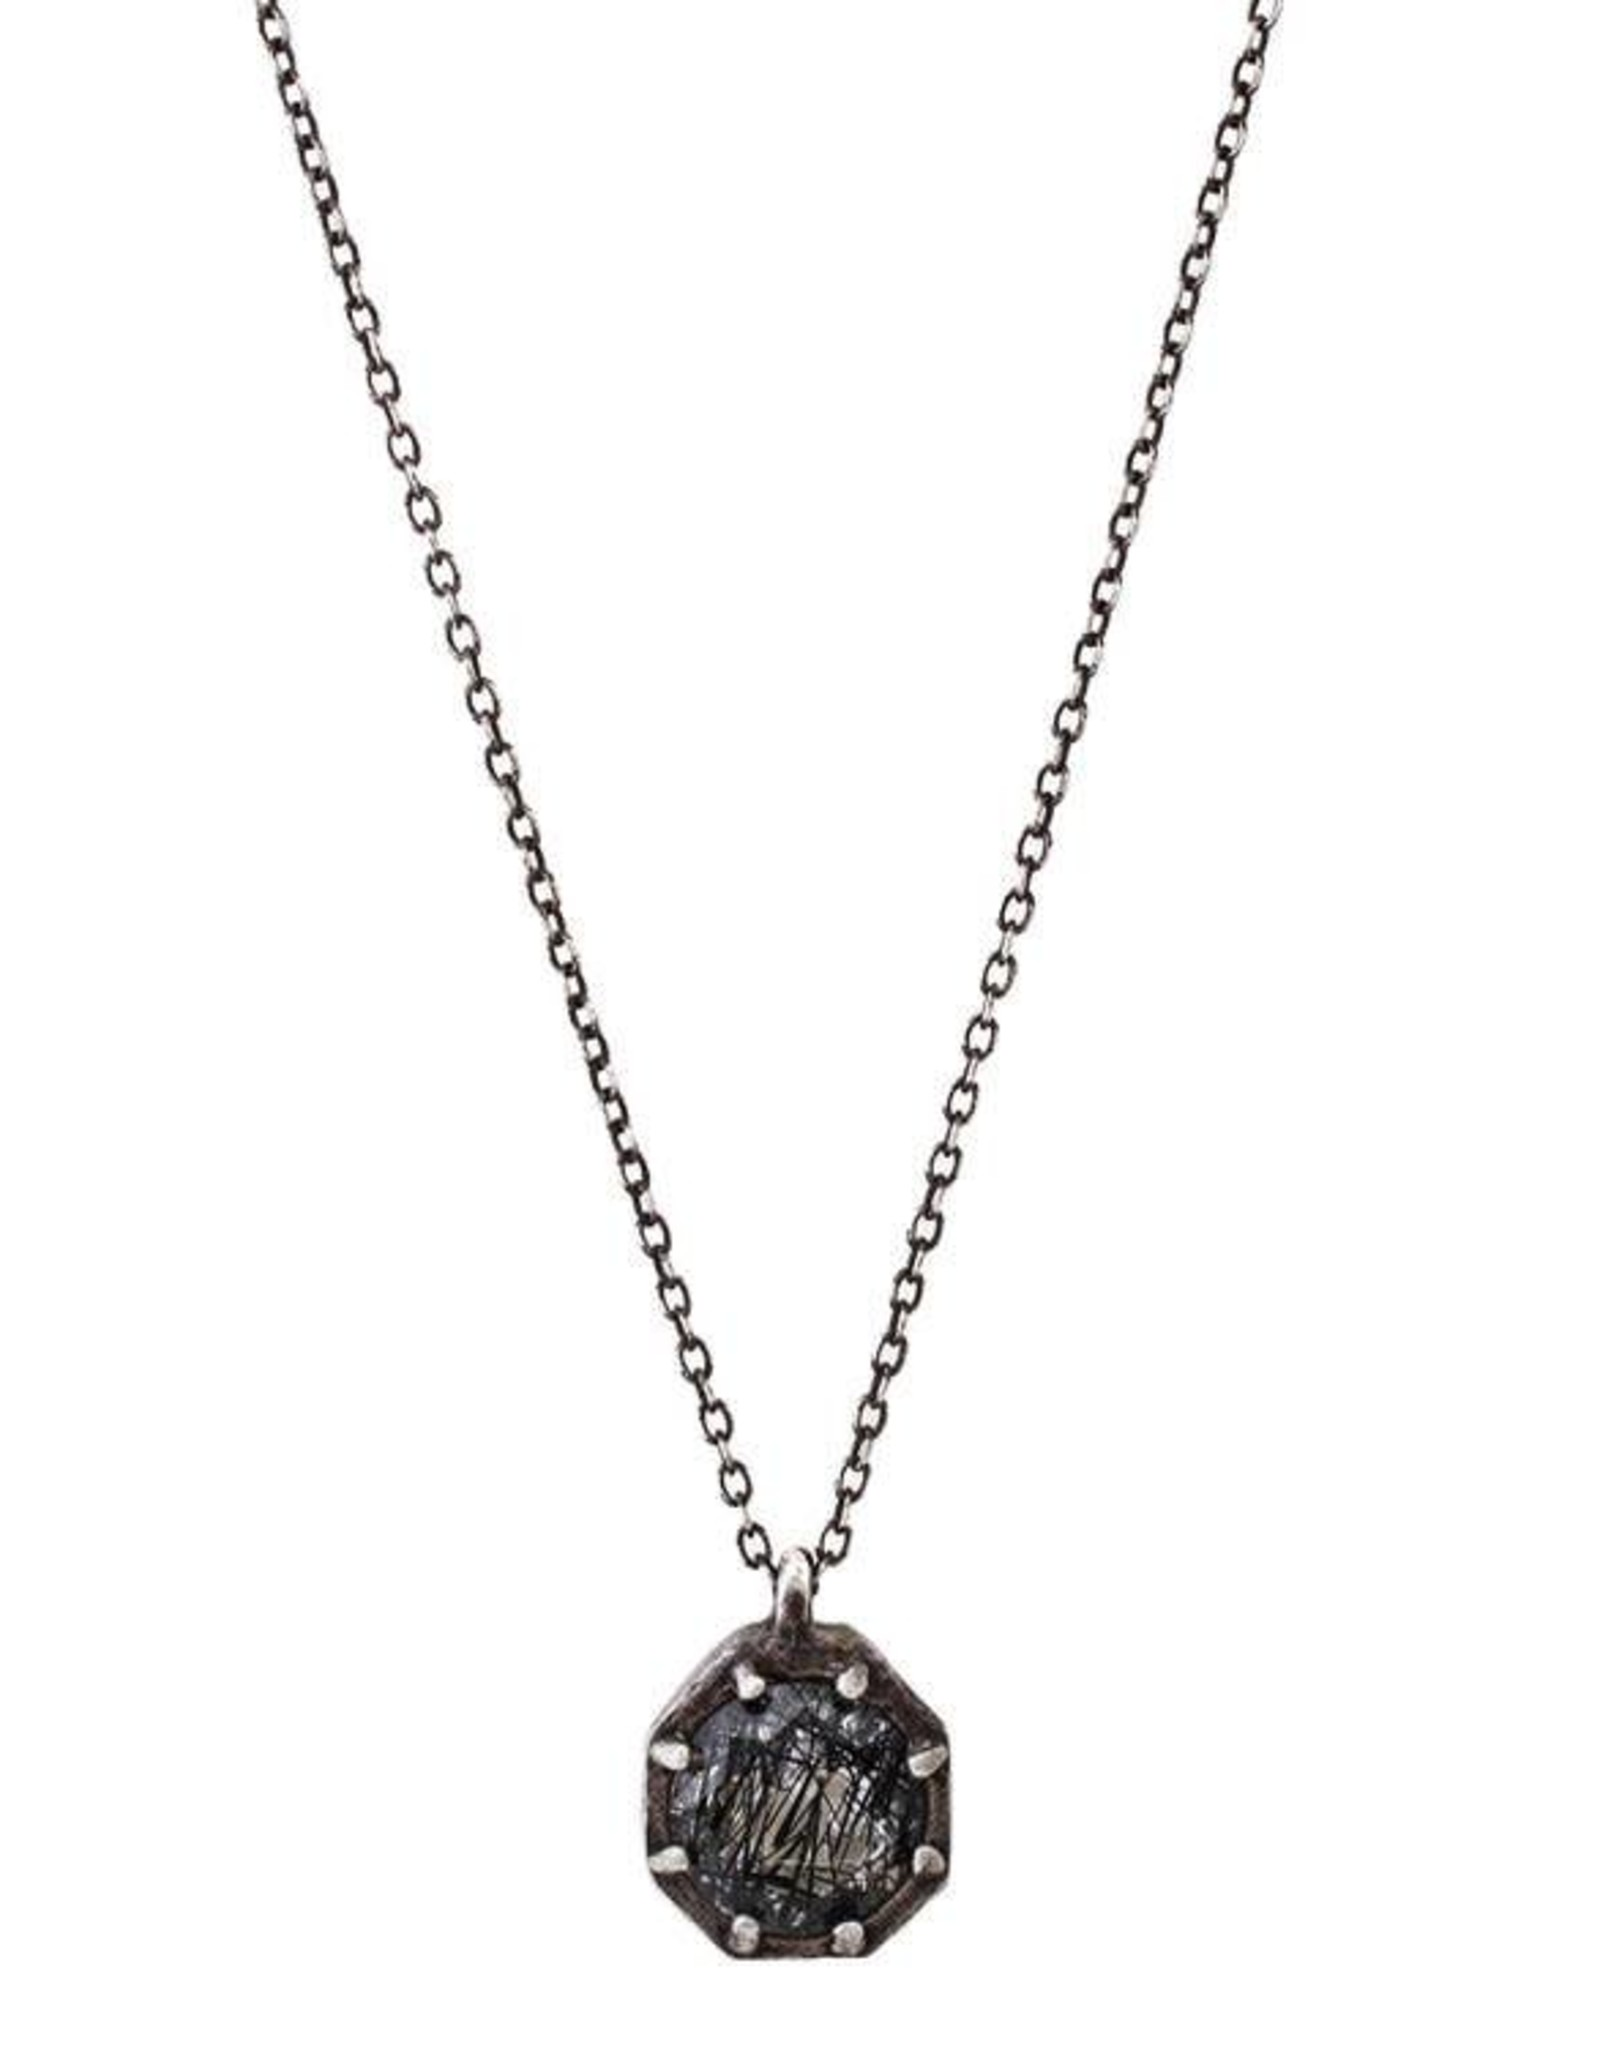 Lauren Wolf Jewelry Oxidized Silver Octagon Necklace - Tourmalated Quartz